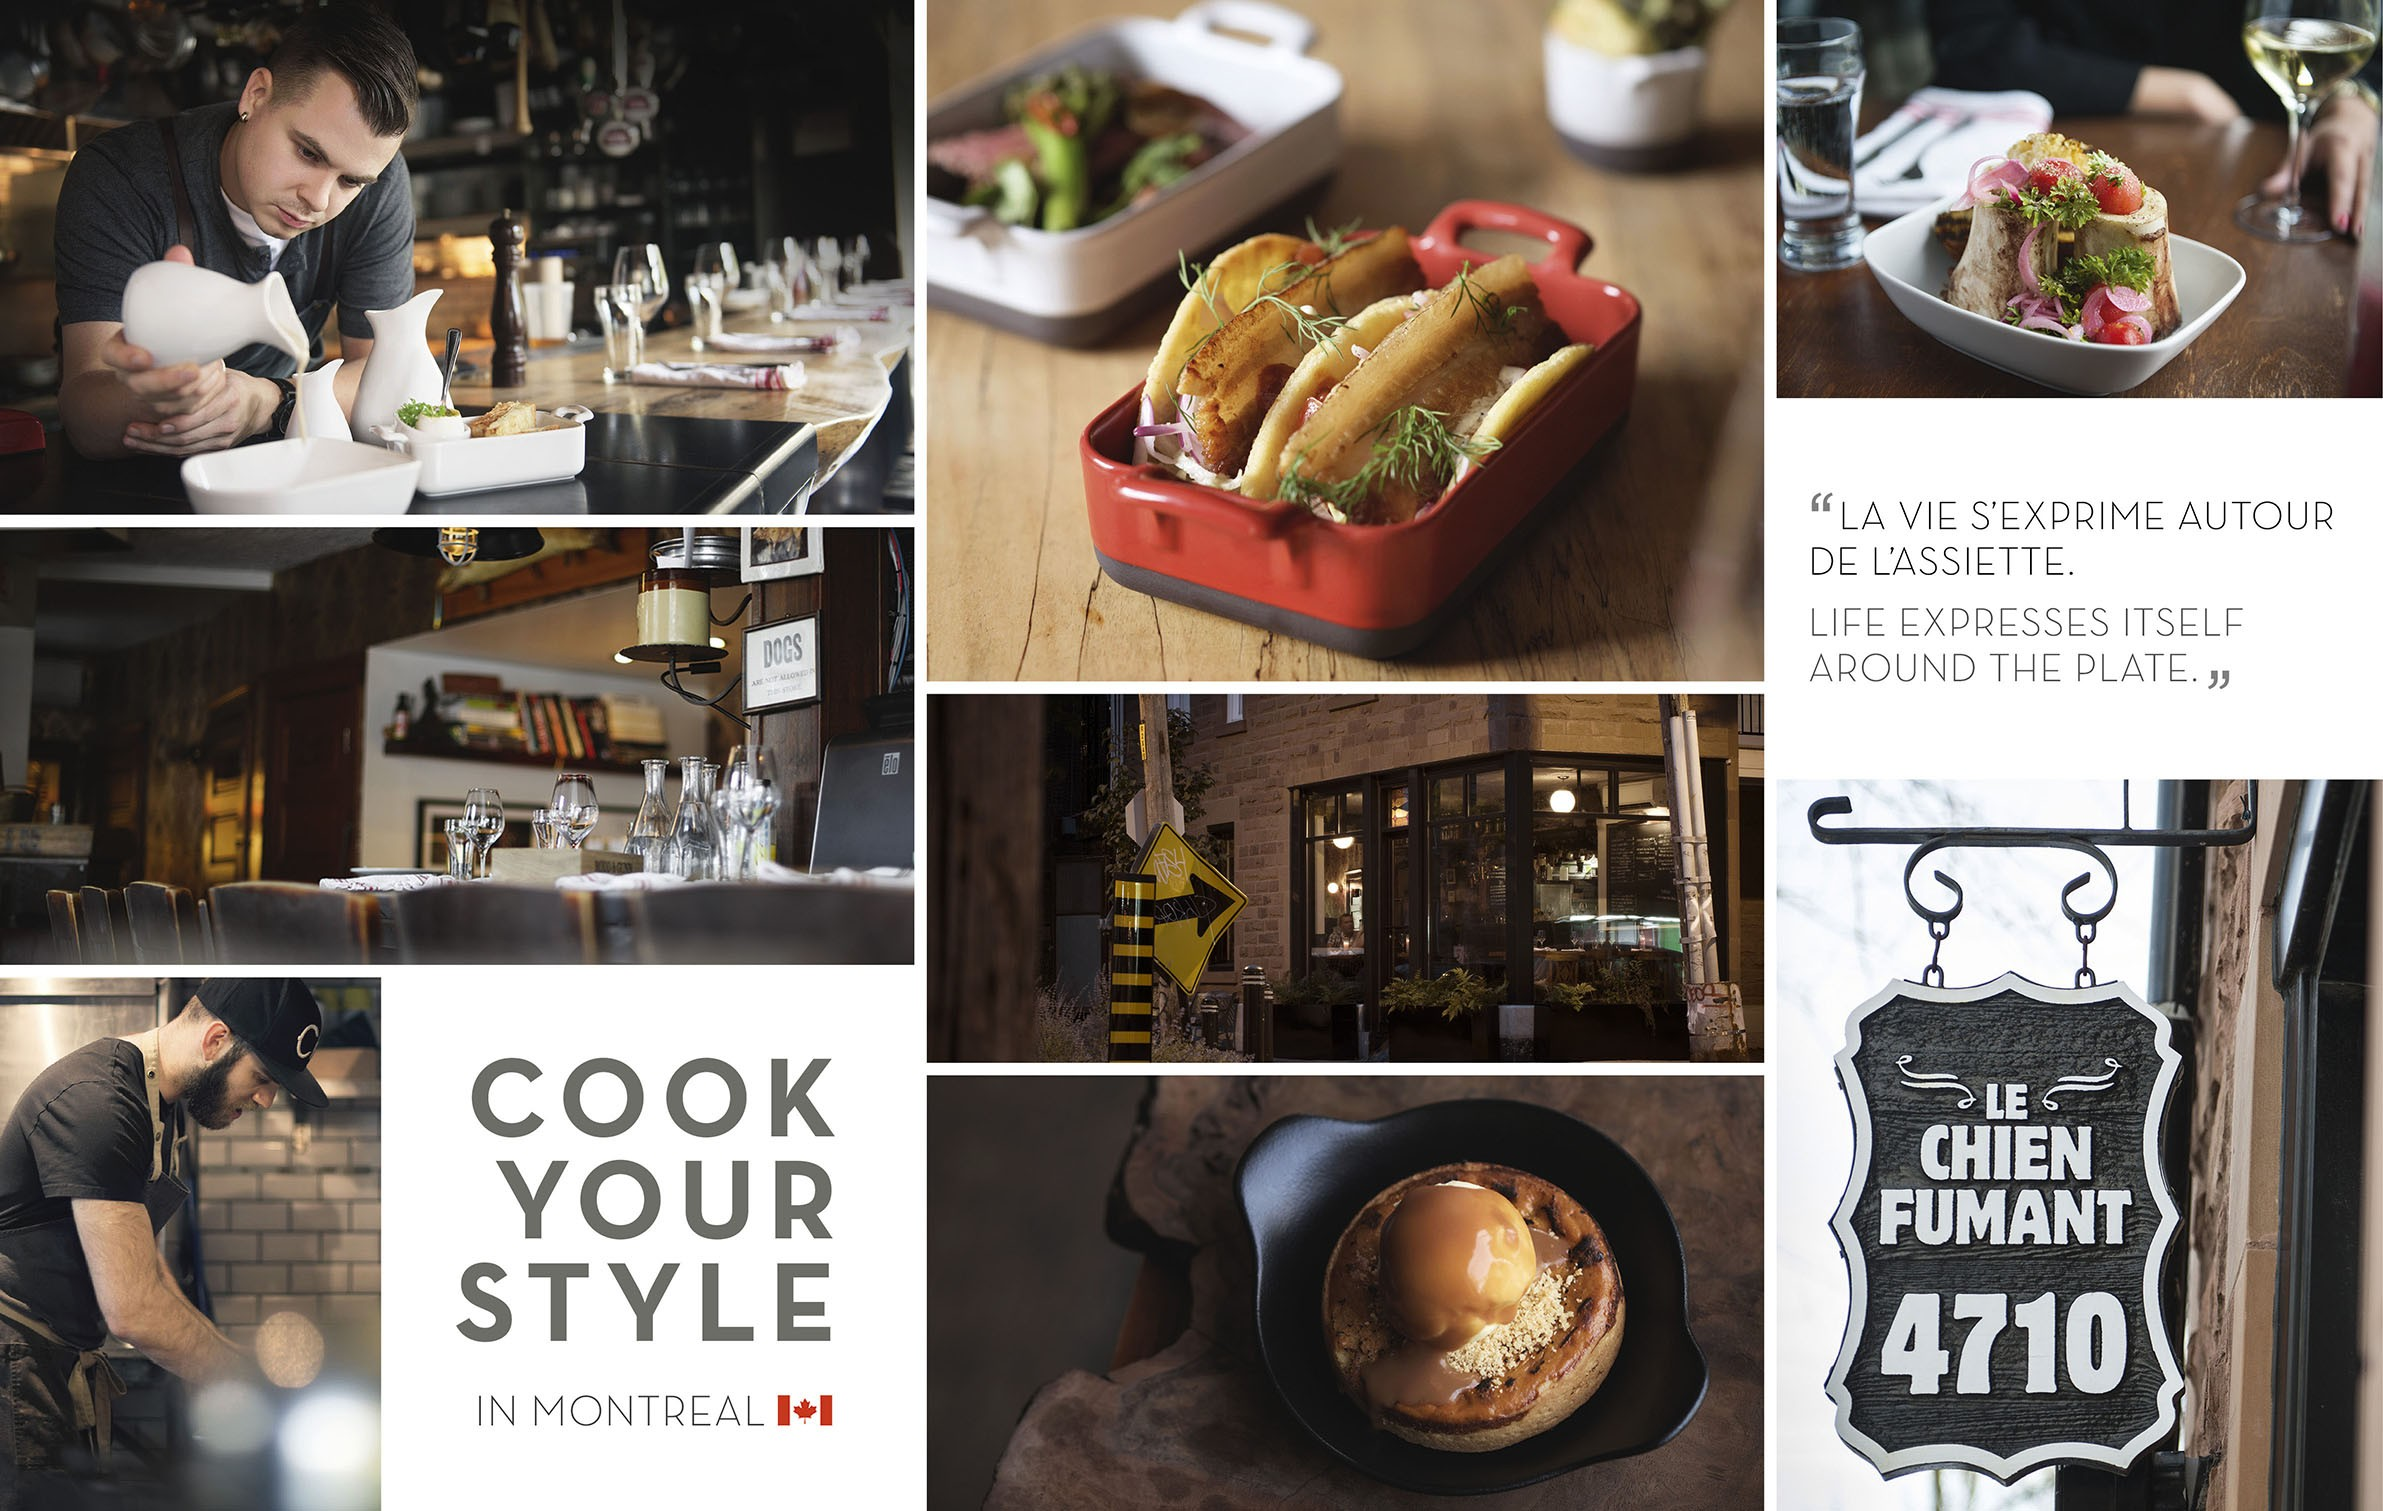 cook your style in montreal - le chien fumant